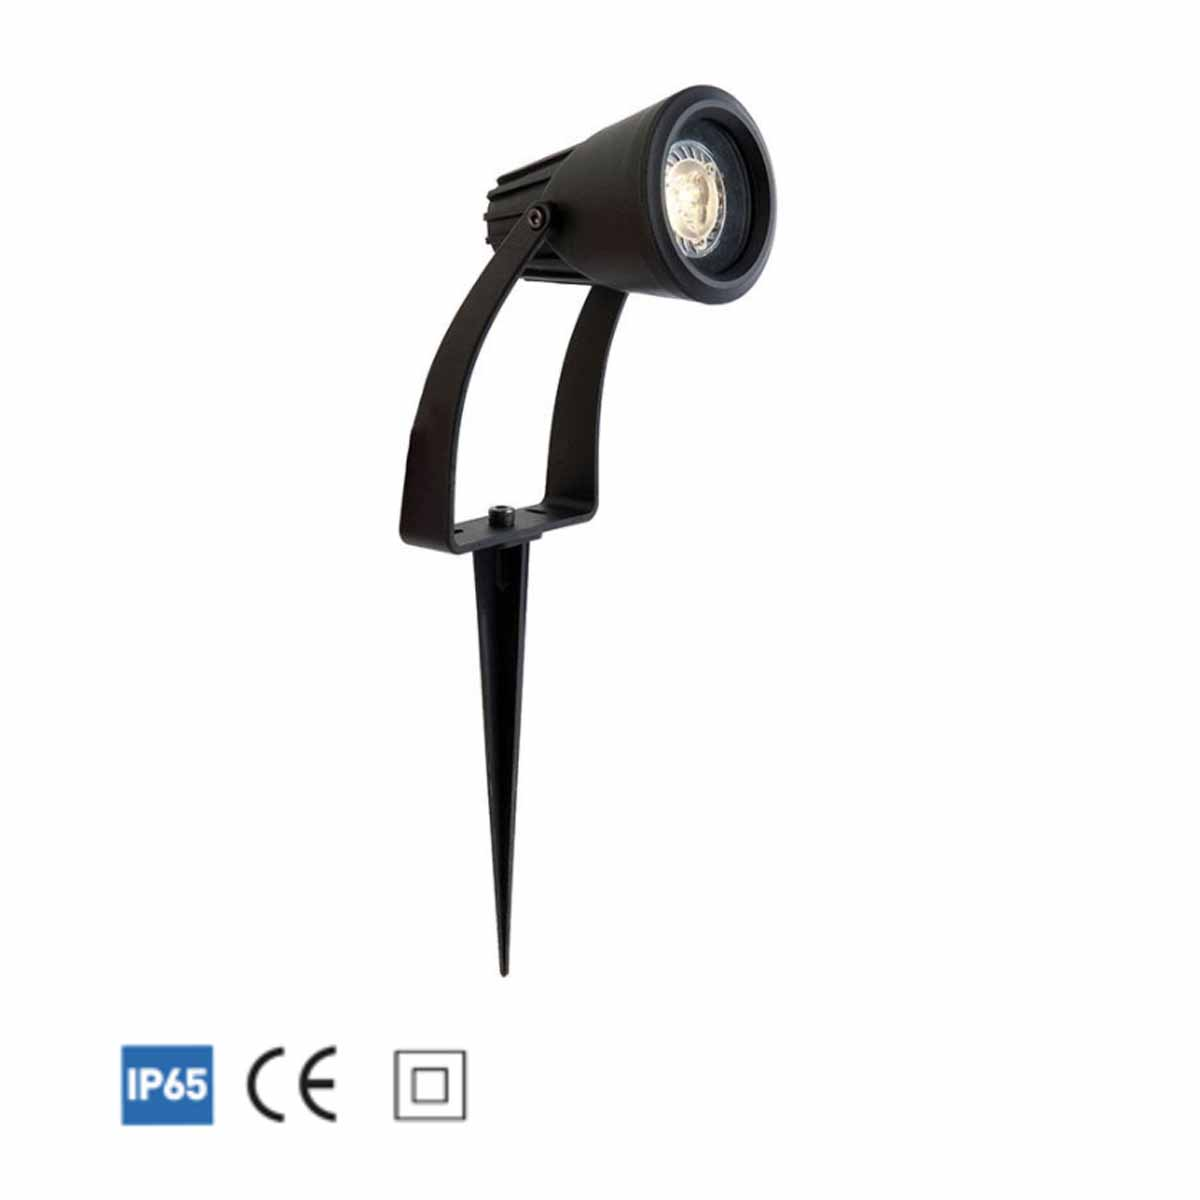 FLORA GU10 LED DUAL PURPOSE SPOTLIGHT 5W BLACK